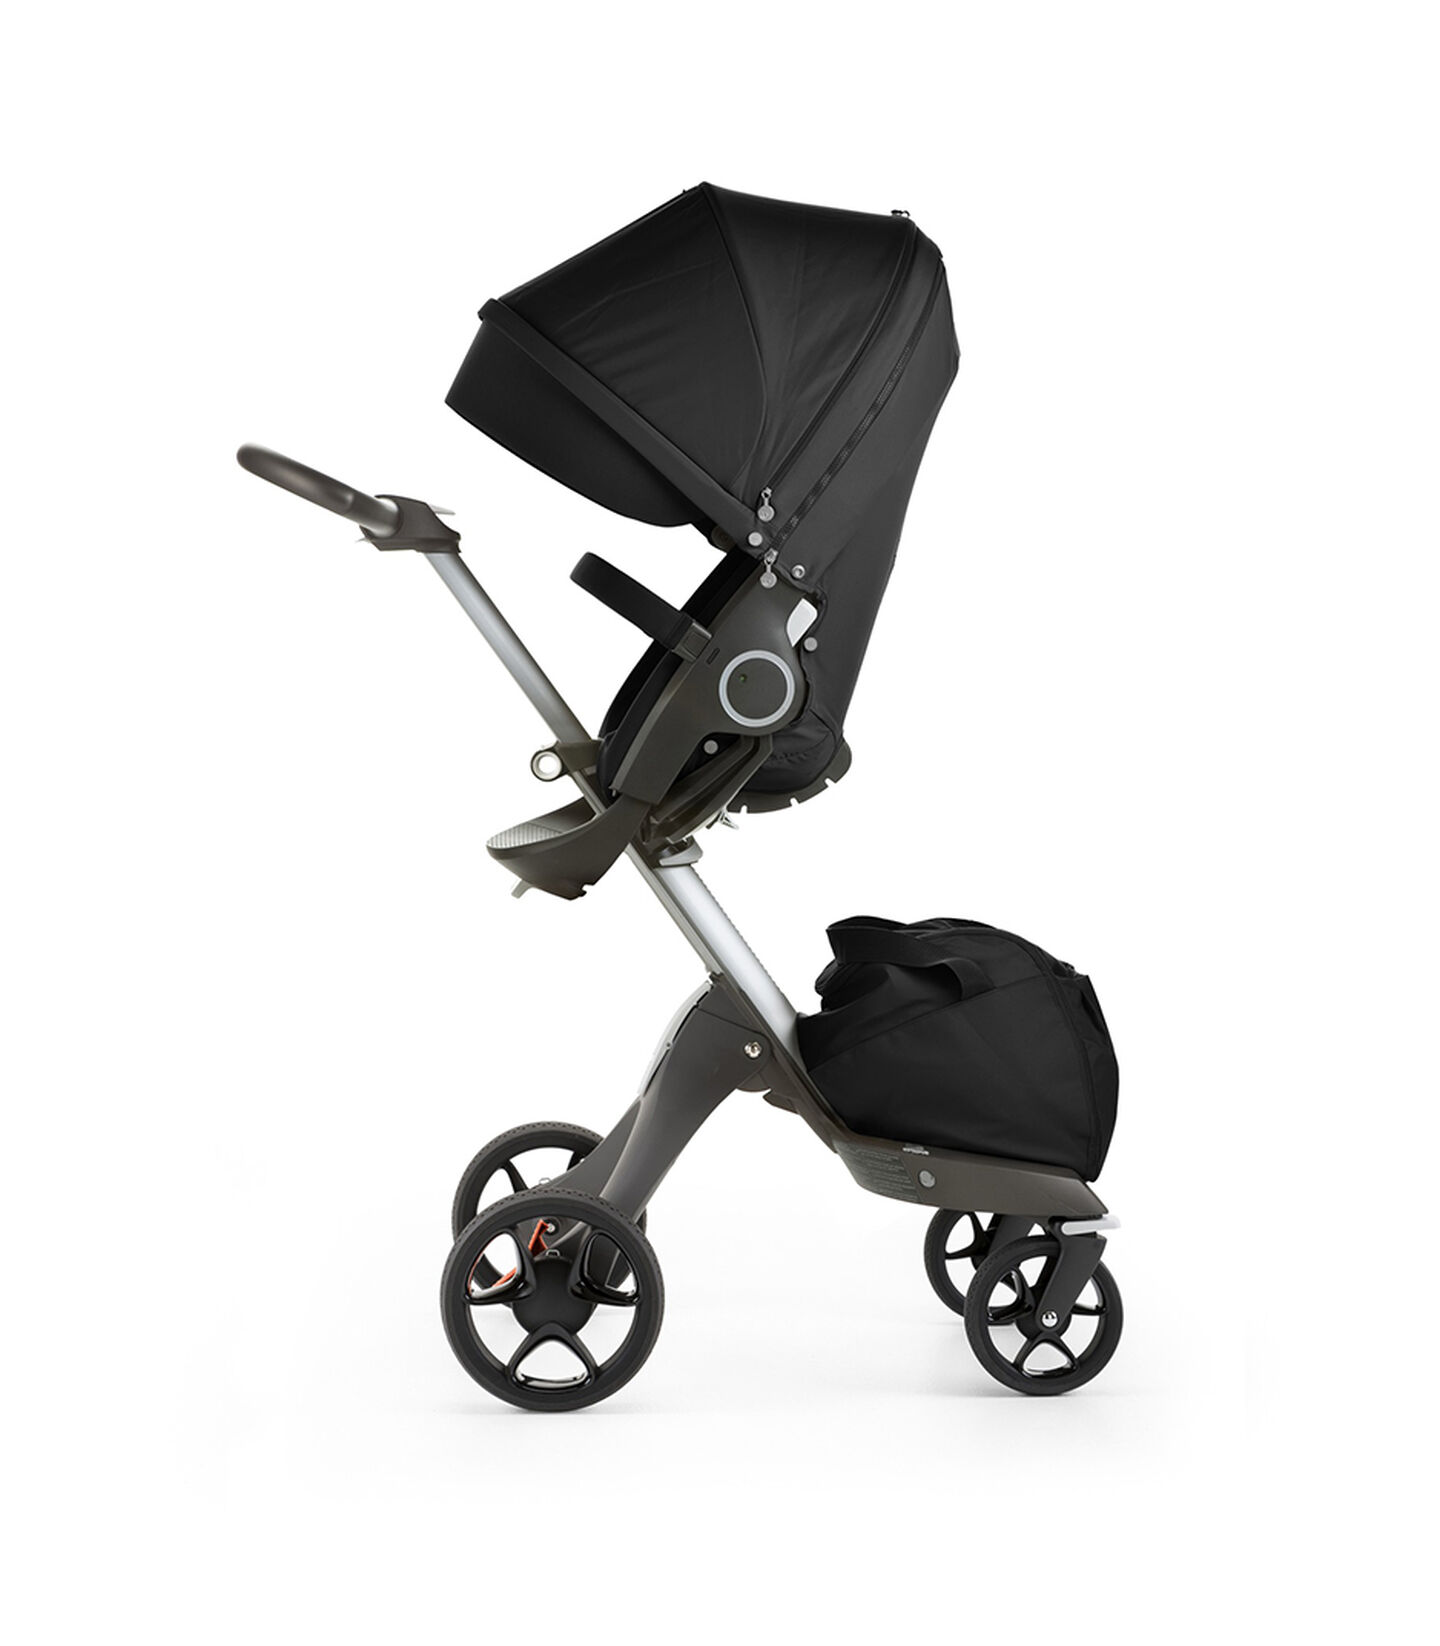 Stokke® Xplory® with Stokke® Stroller Seat, Black. New wheels 2016.